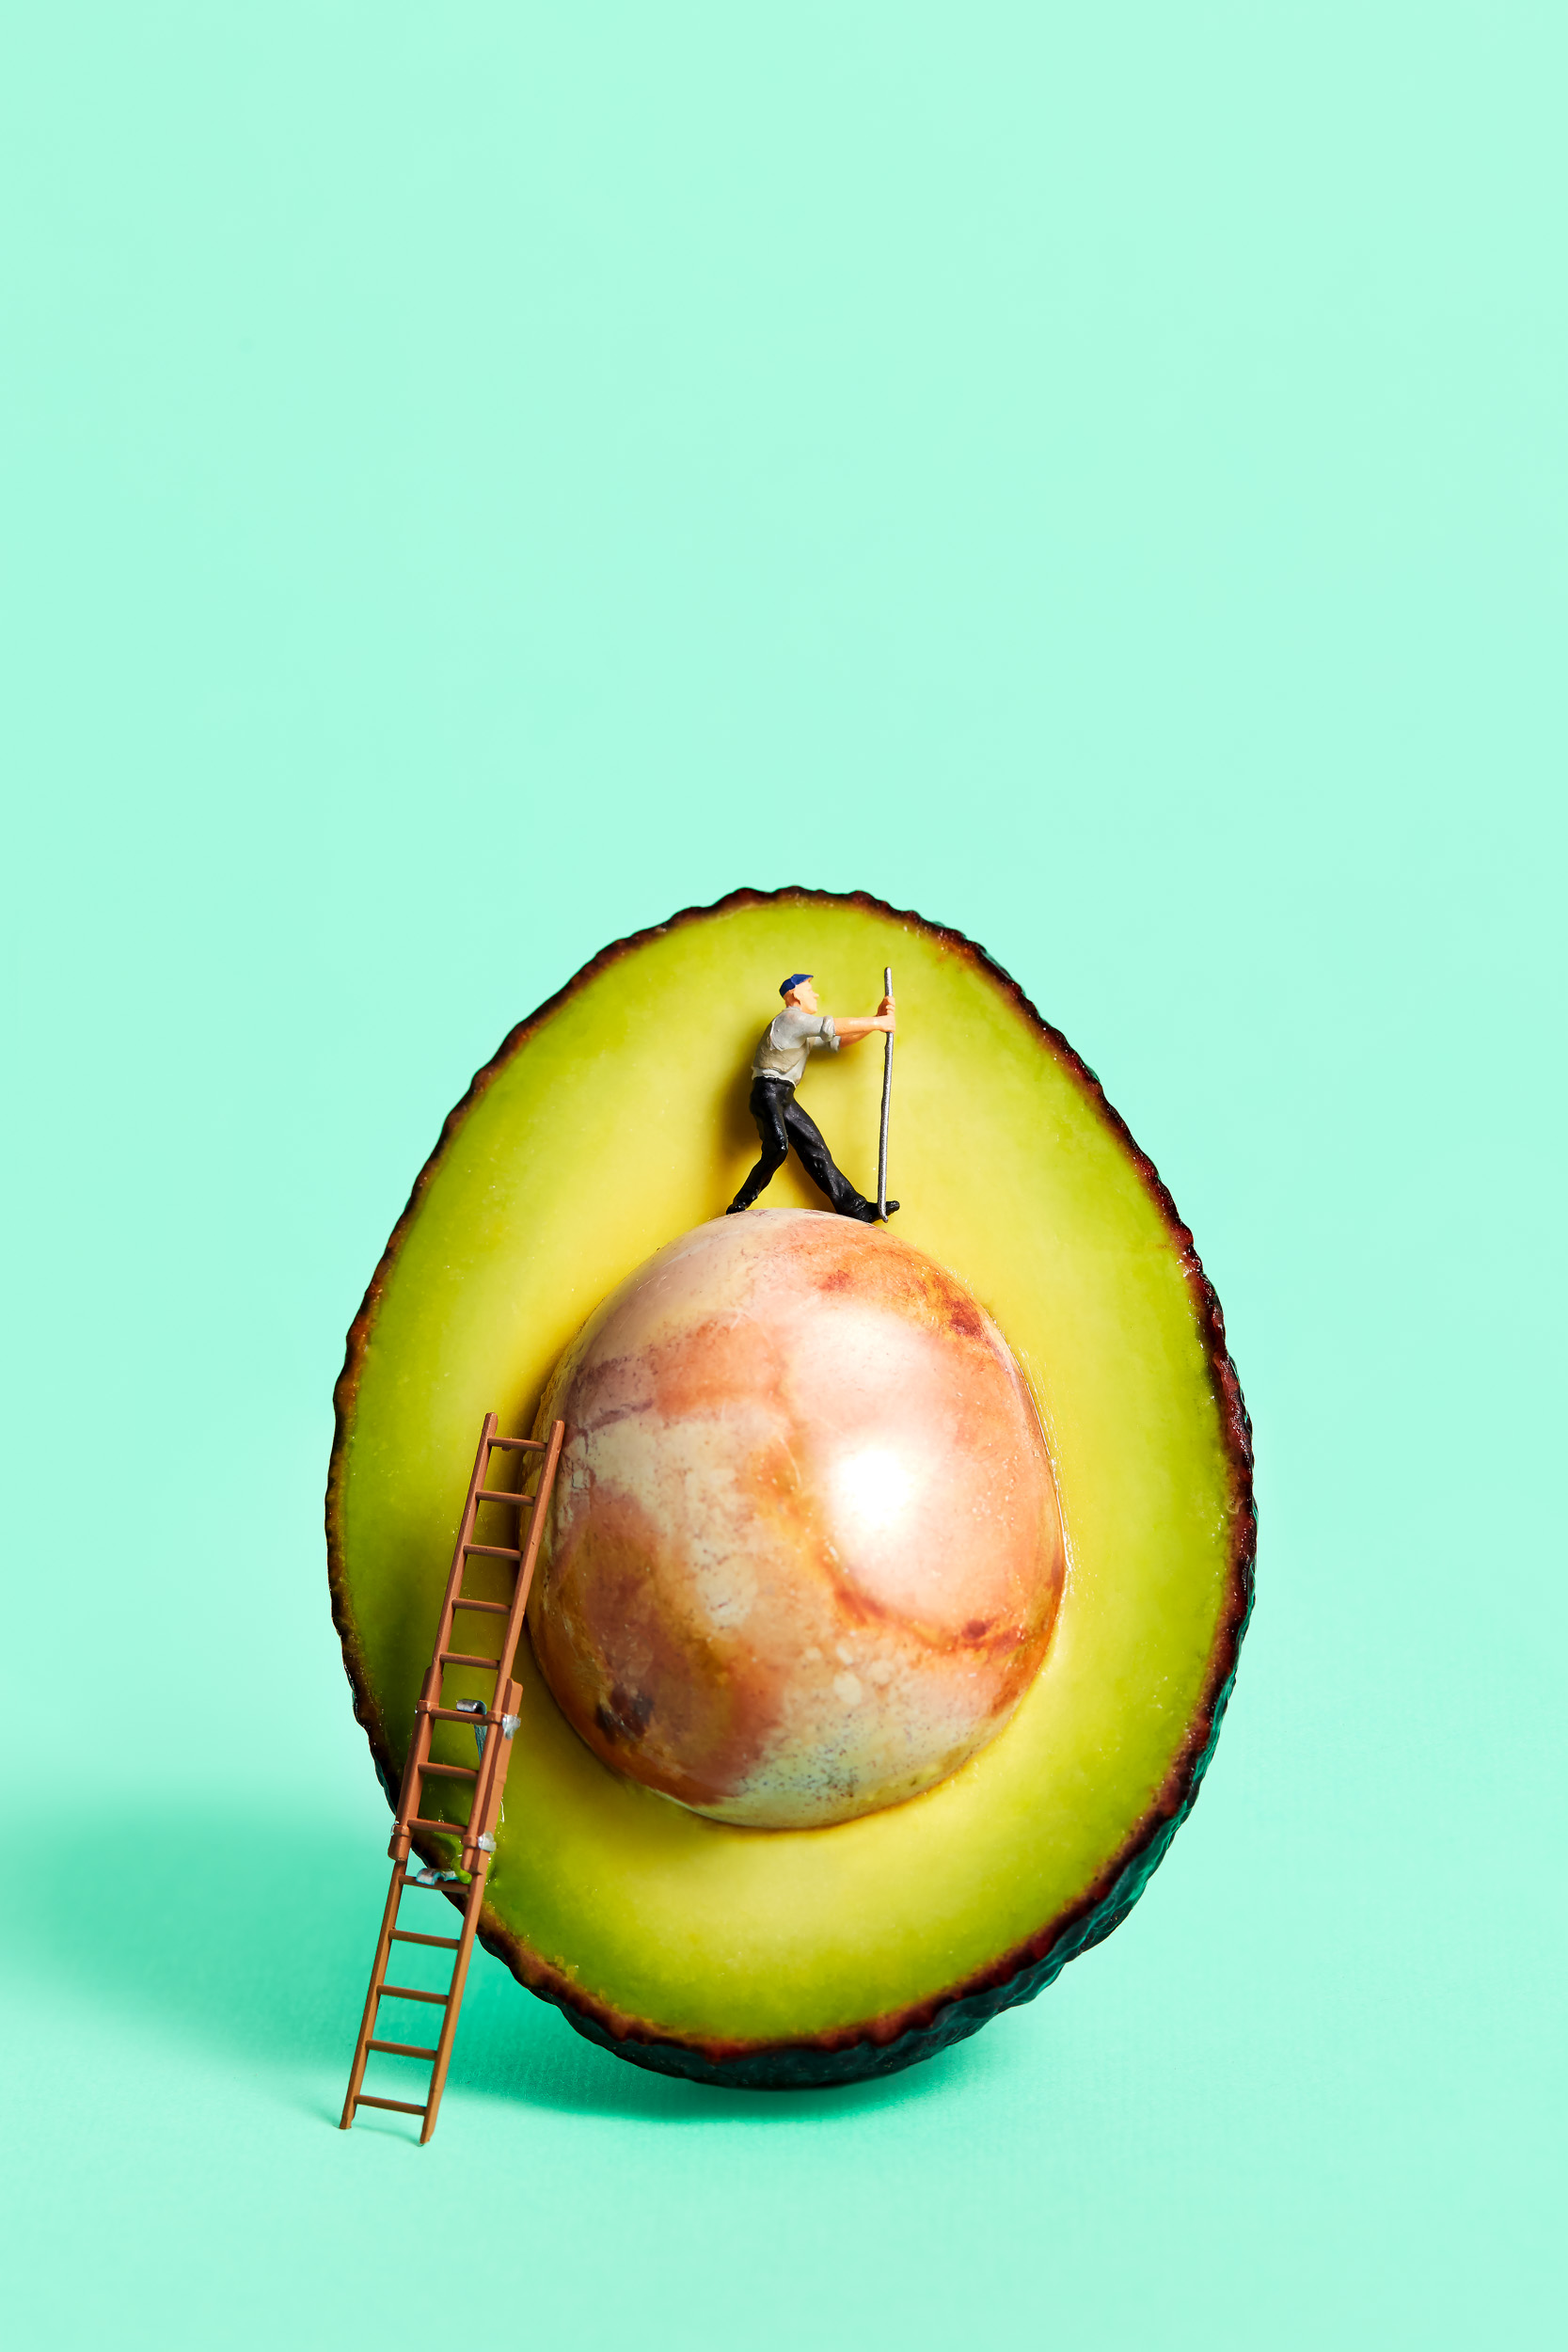 2018.10_005_MININGPRODUCE_AVOCADO